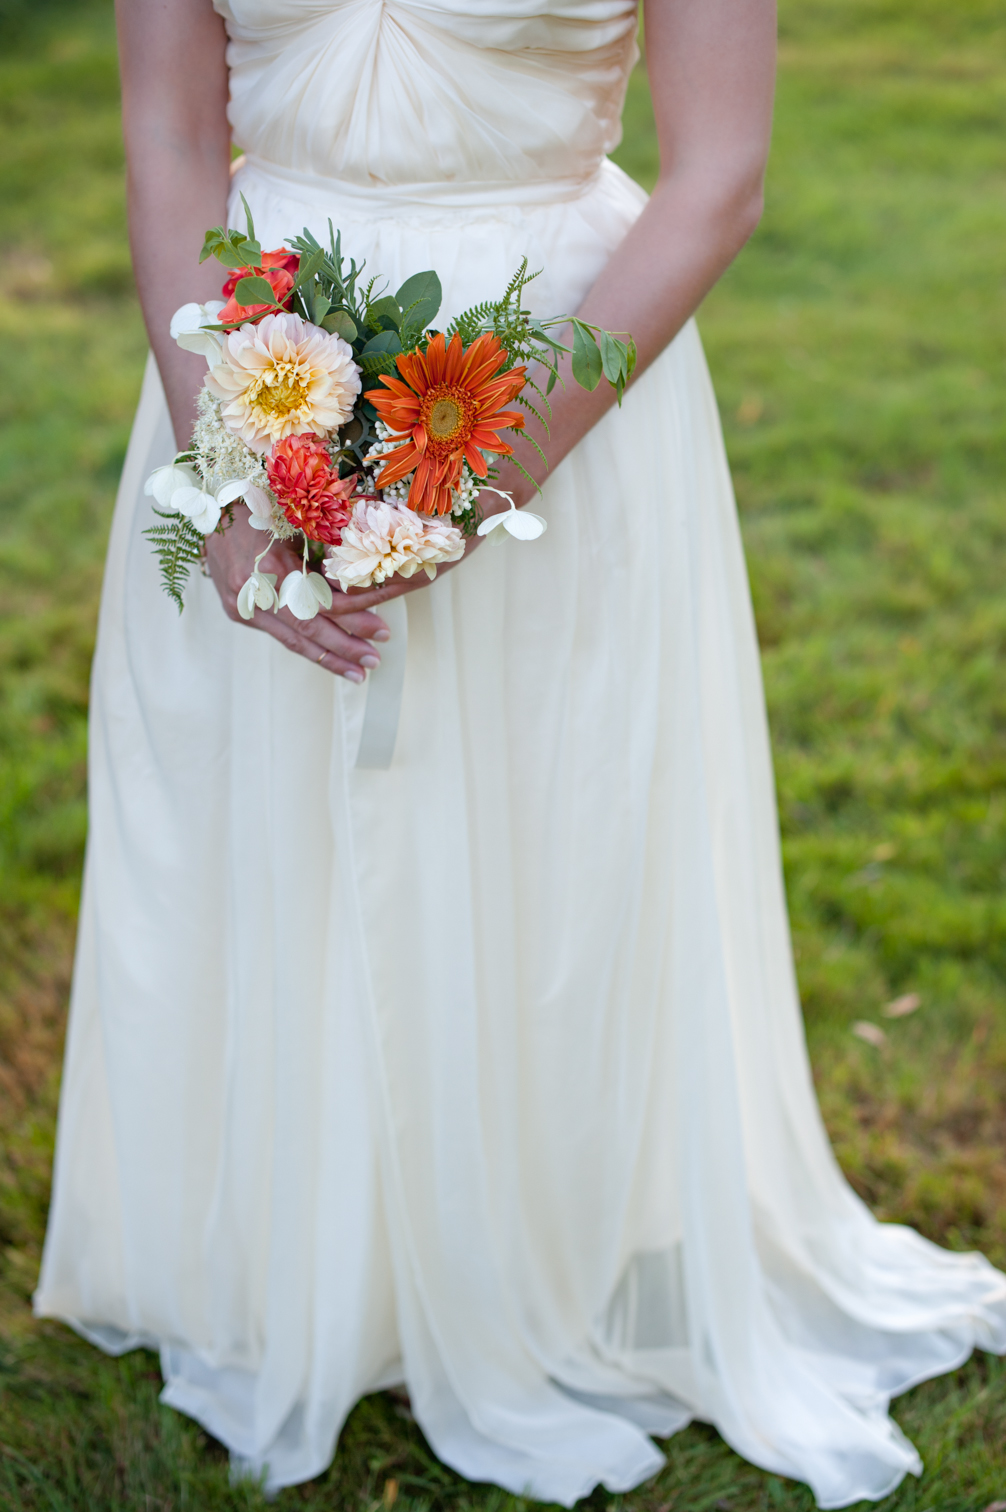 JASMINE_BALGOBIN_JASMINE_TARA_PHOTOGRAPHY_WHITE_GATE_FARM_WEDDING_OUTDOOR_WEDDING_ARTISTIC_CREATIVE_-5